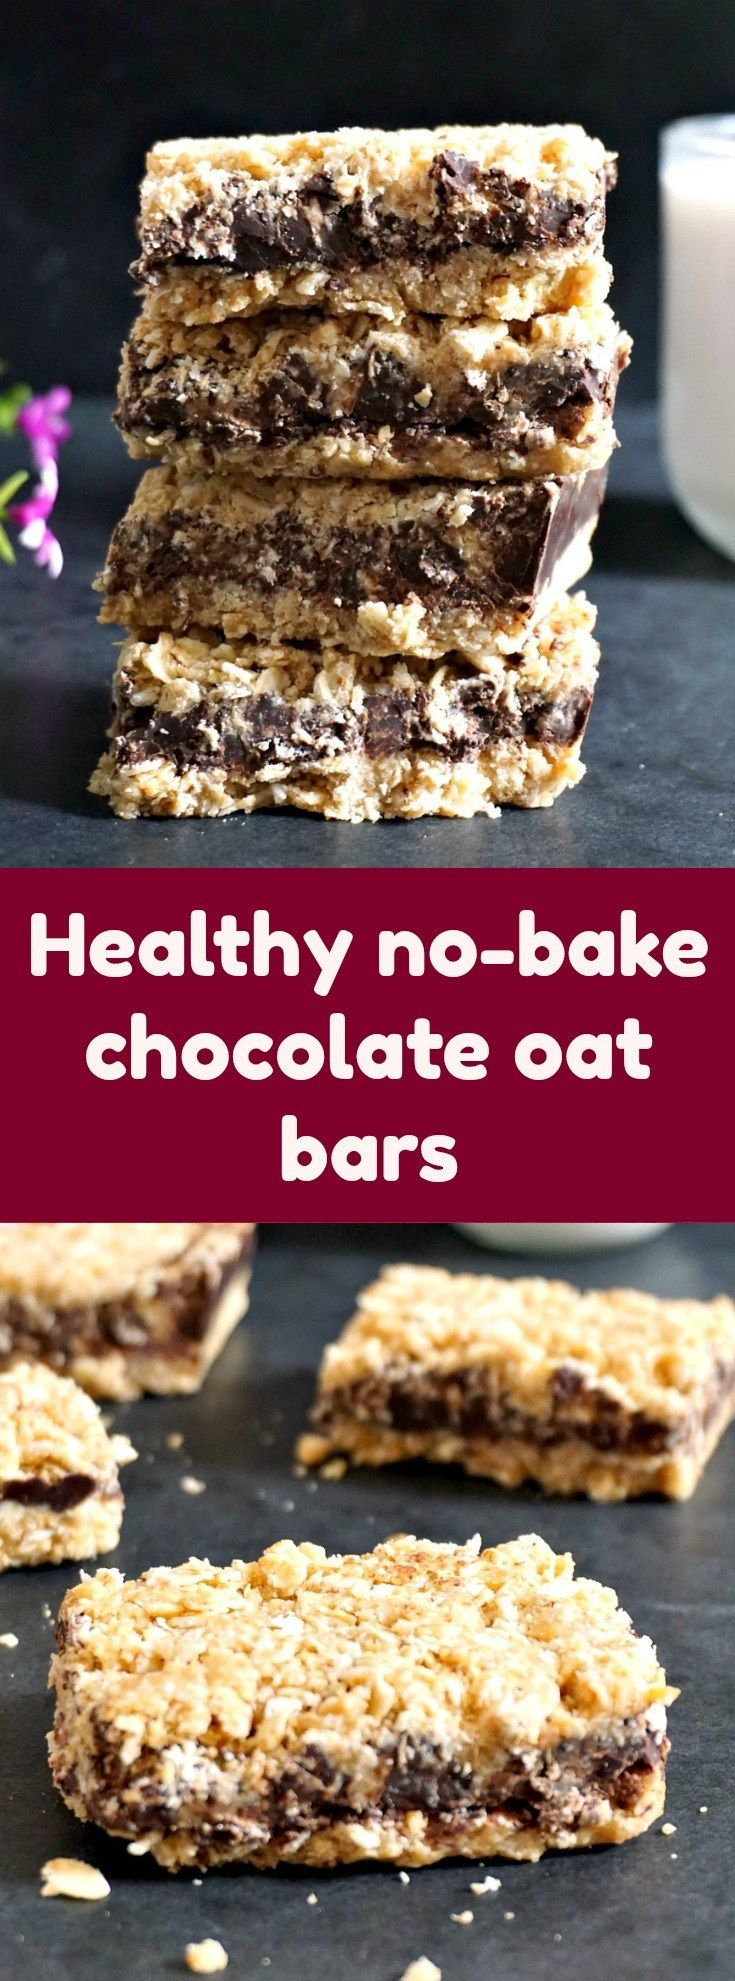 Healthy no-bake chocolate oat bars with peanut butter and apple sauce, a quick and guilt-free snack to boost your energy whenever your sweet tooth craves some sugar. Vegan and gluten free, only 4 ingredients is all it takes, and l promise you these cereal bars are way better than any store-bought so-called healthy cereal bars. No need to turn the oven on either, they are ready in no time.